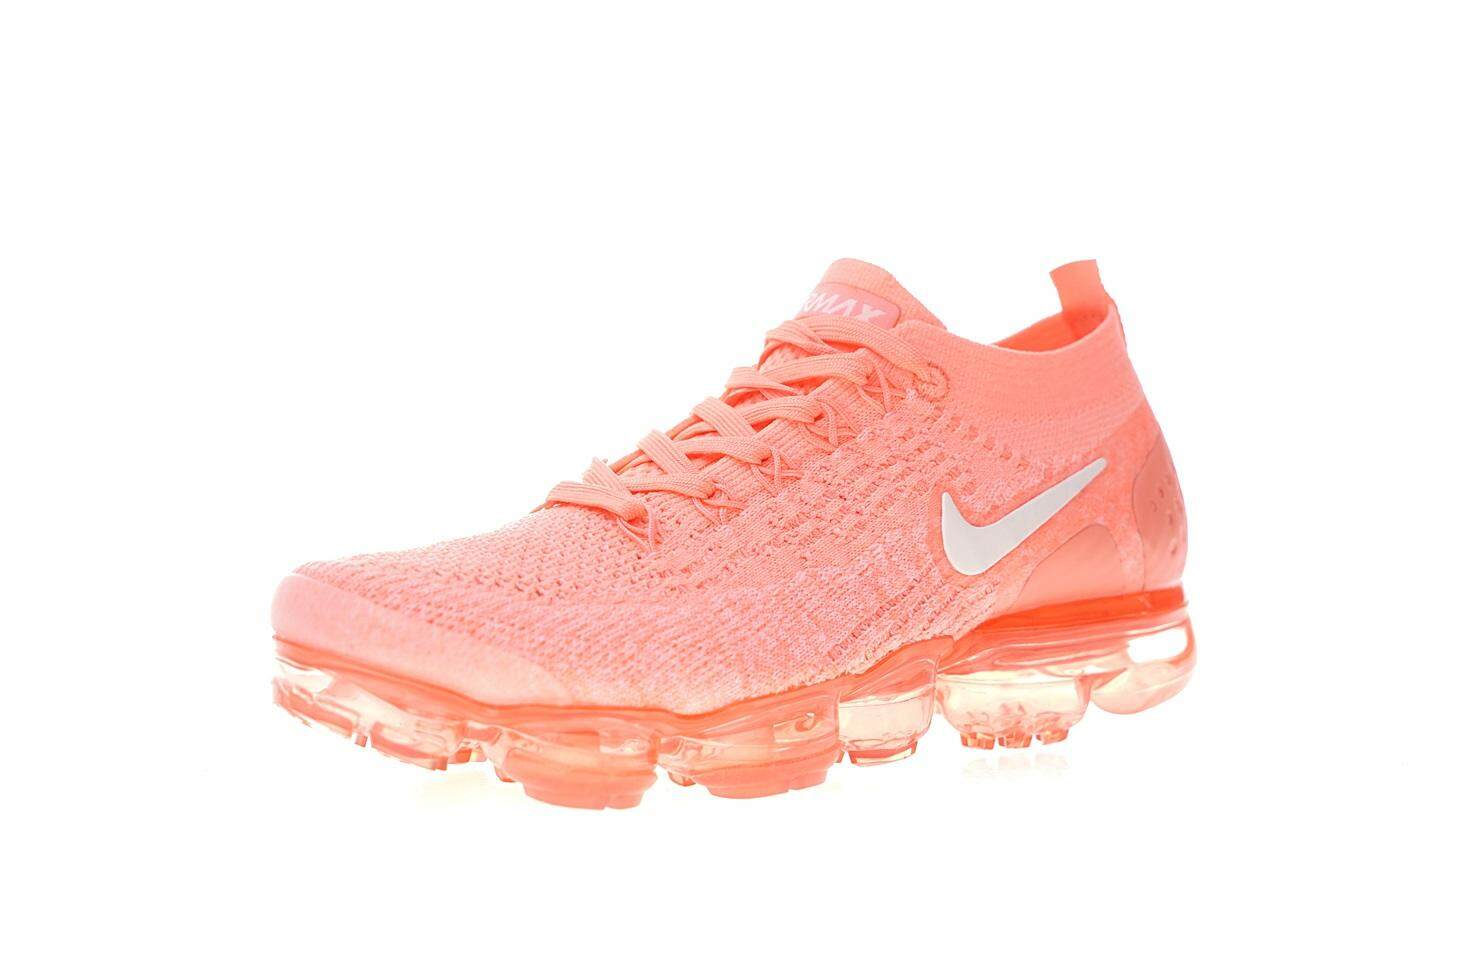 b8f9cba9cf1b Nike Women s Sports Shoes - Running Shoes price in Malaysia - Best ...